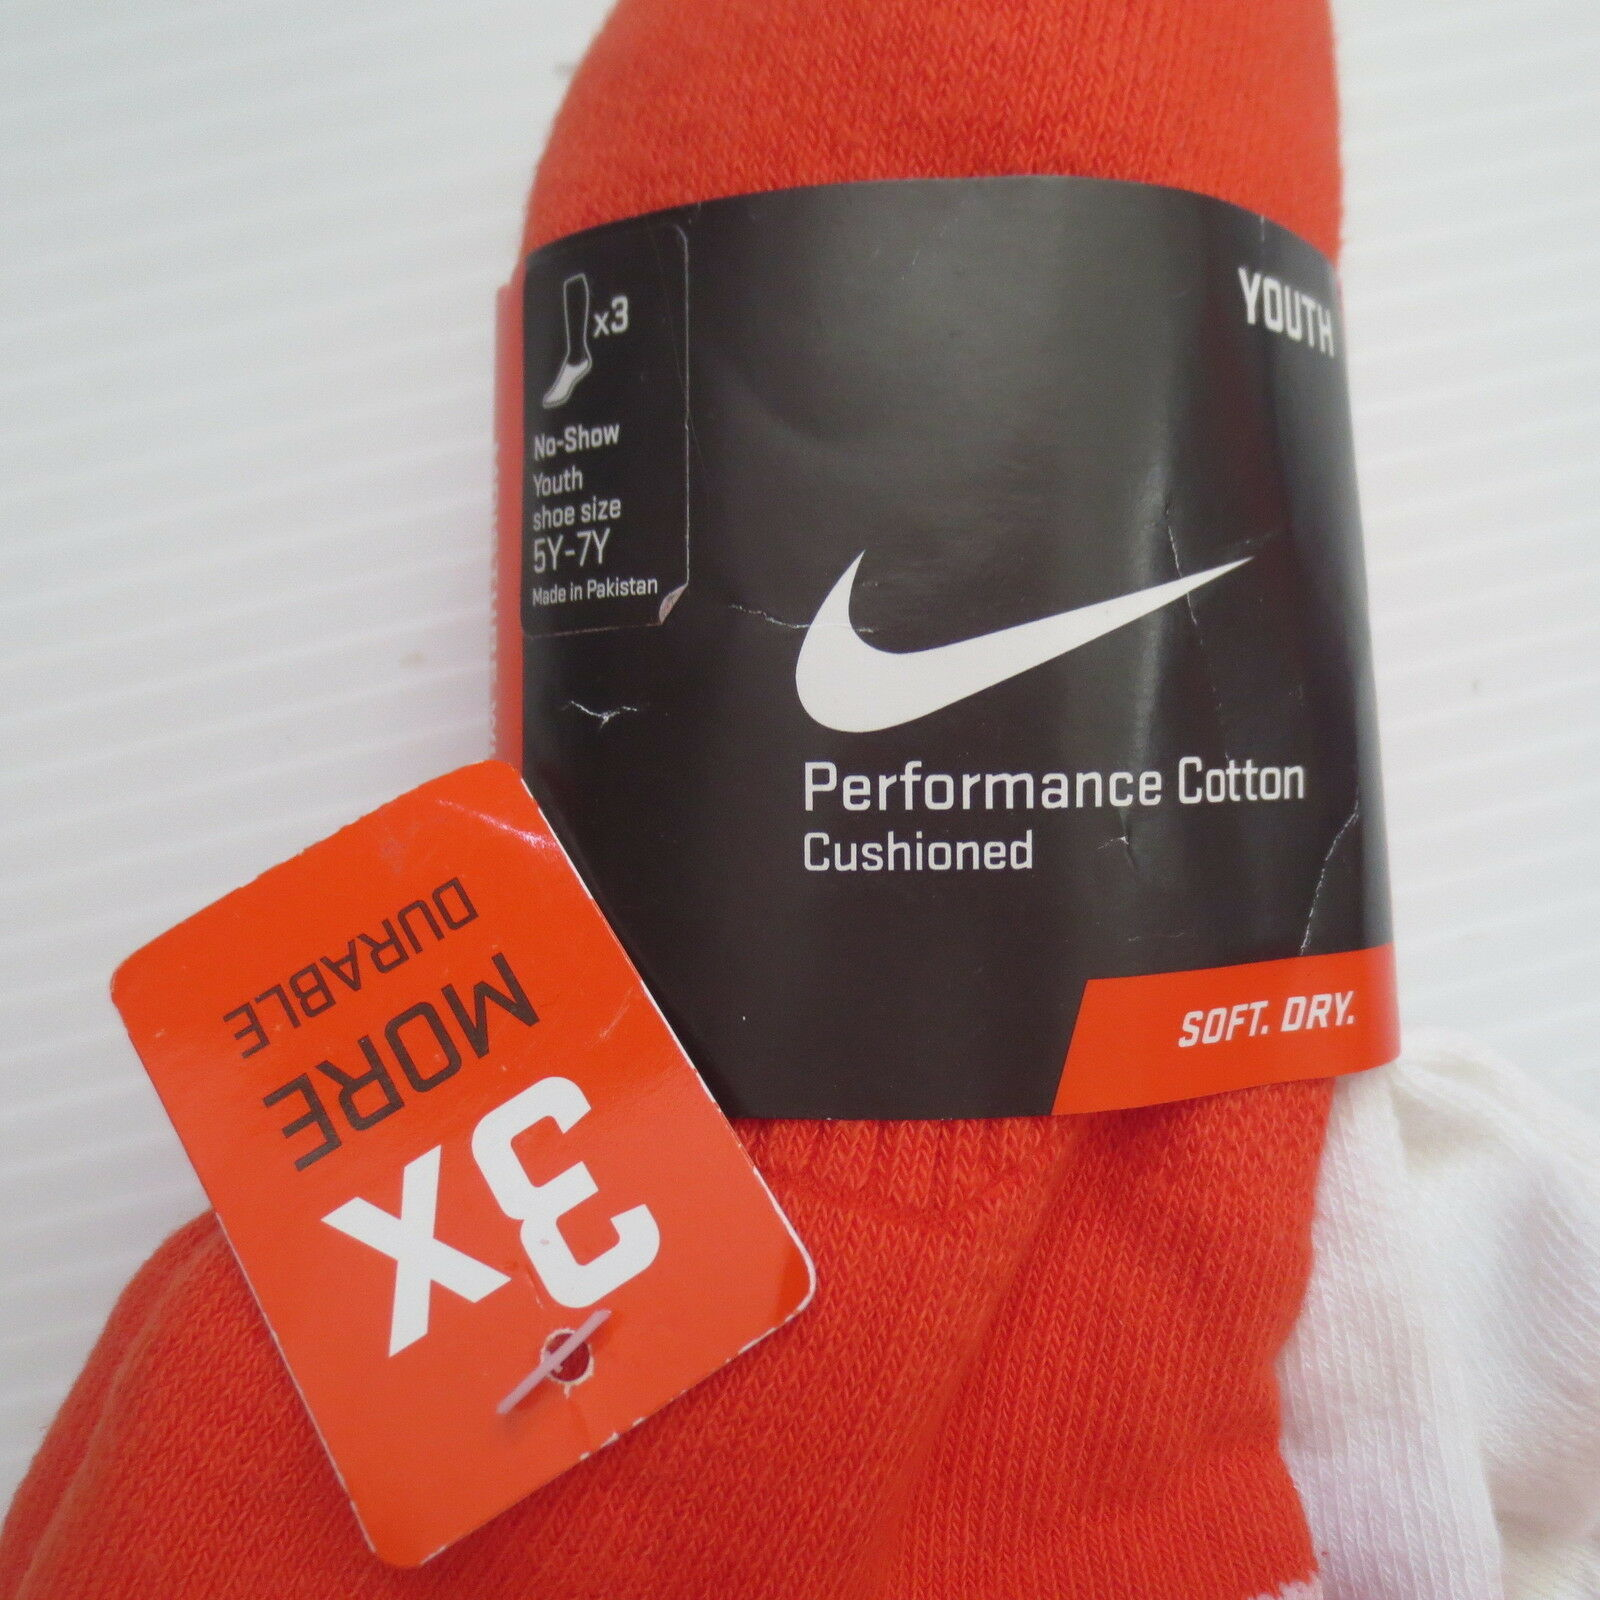 Nike Youth Cotton Cushioned Socks 3 Packs - SX4721 - Size (5Y-7Y) - NEW